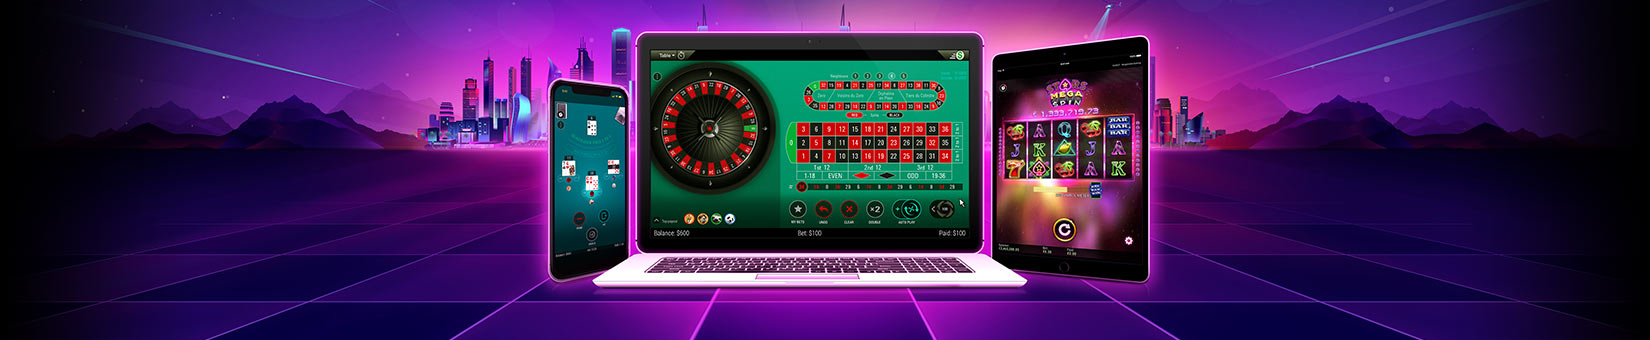 Pokerstars Casino - 6977